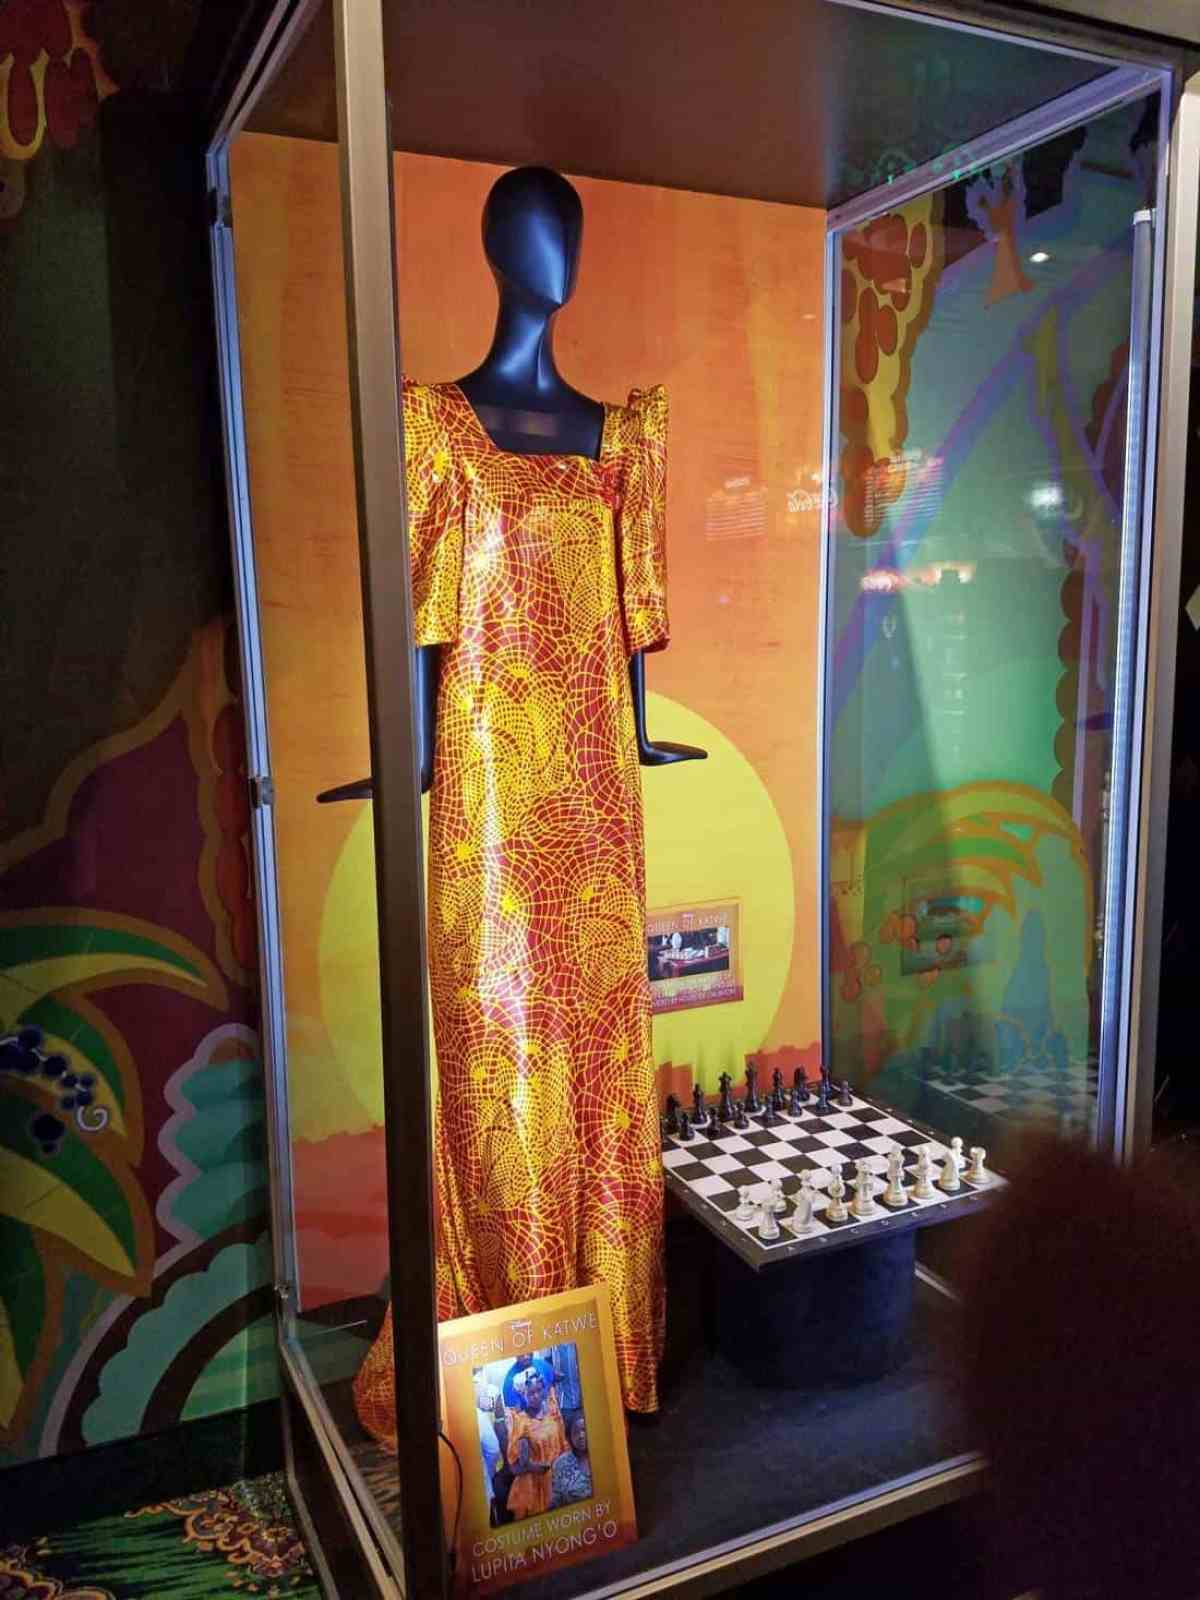 Ugandan dress worn by Lupita Nyong'o on display in the lobby of El Capitan Theater.